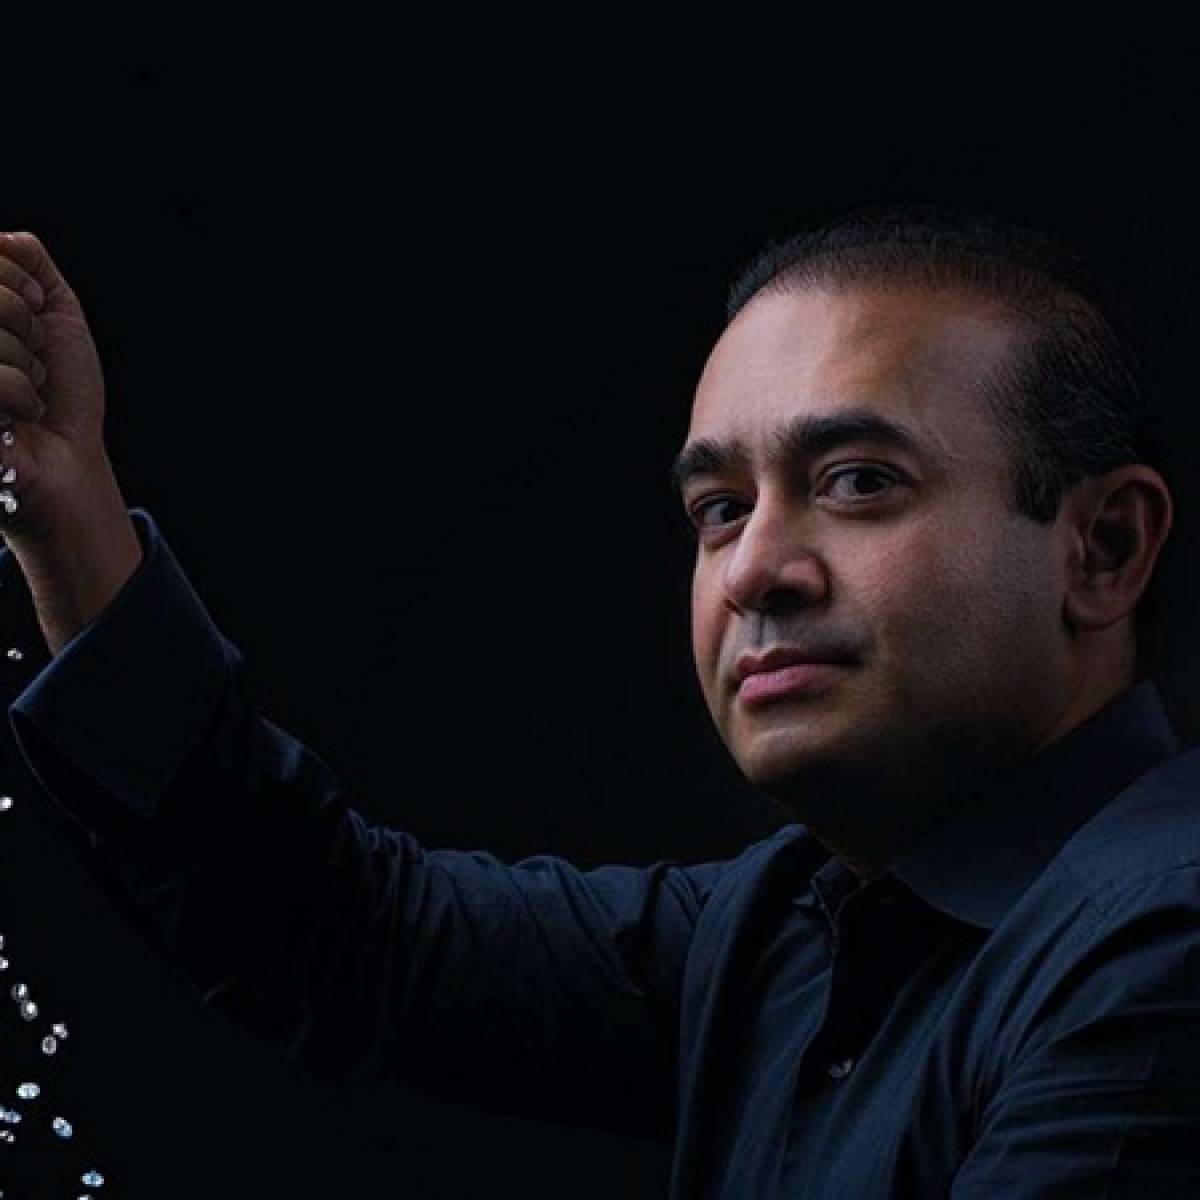 PNB fraud: Swiss authorities freeze 4 bank accounts of Nirav Modi, sister